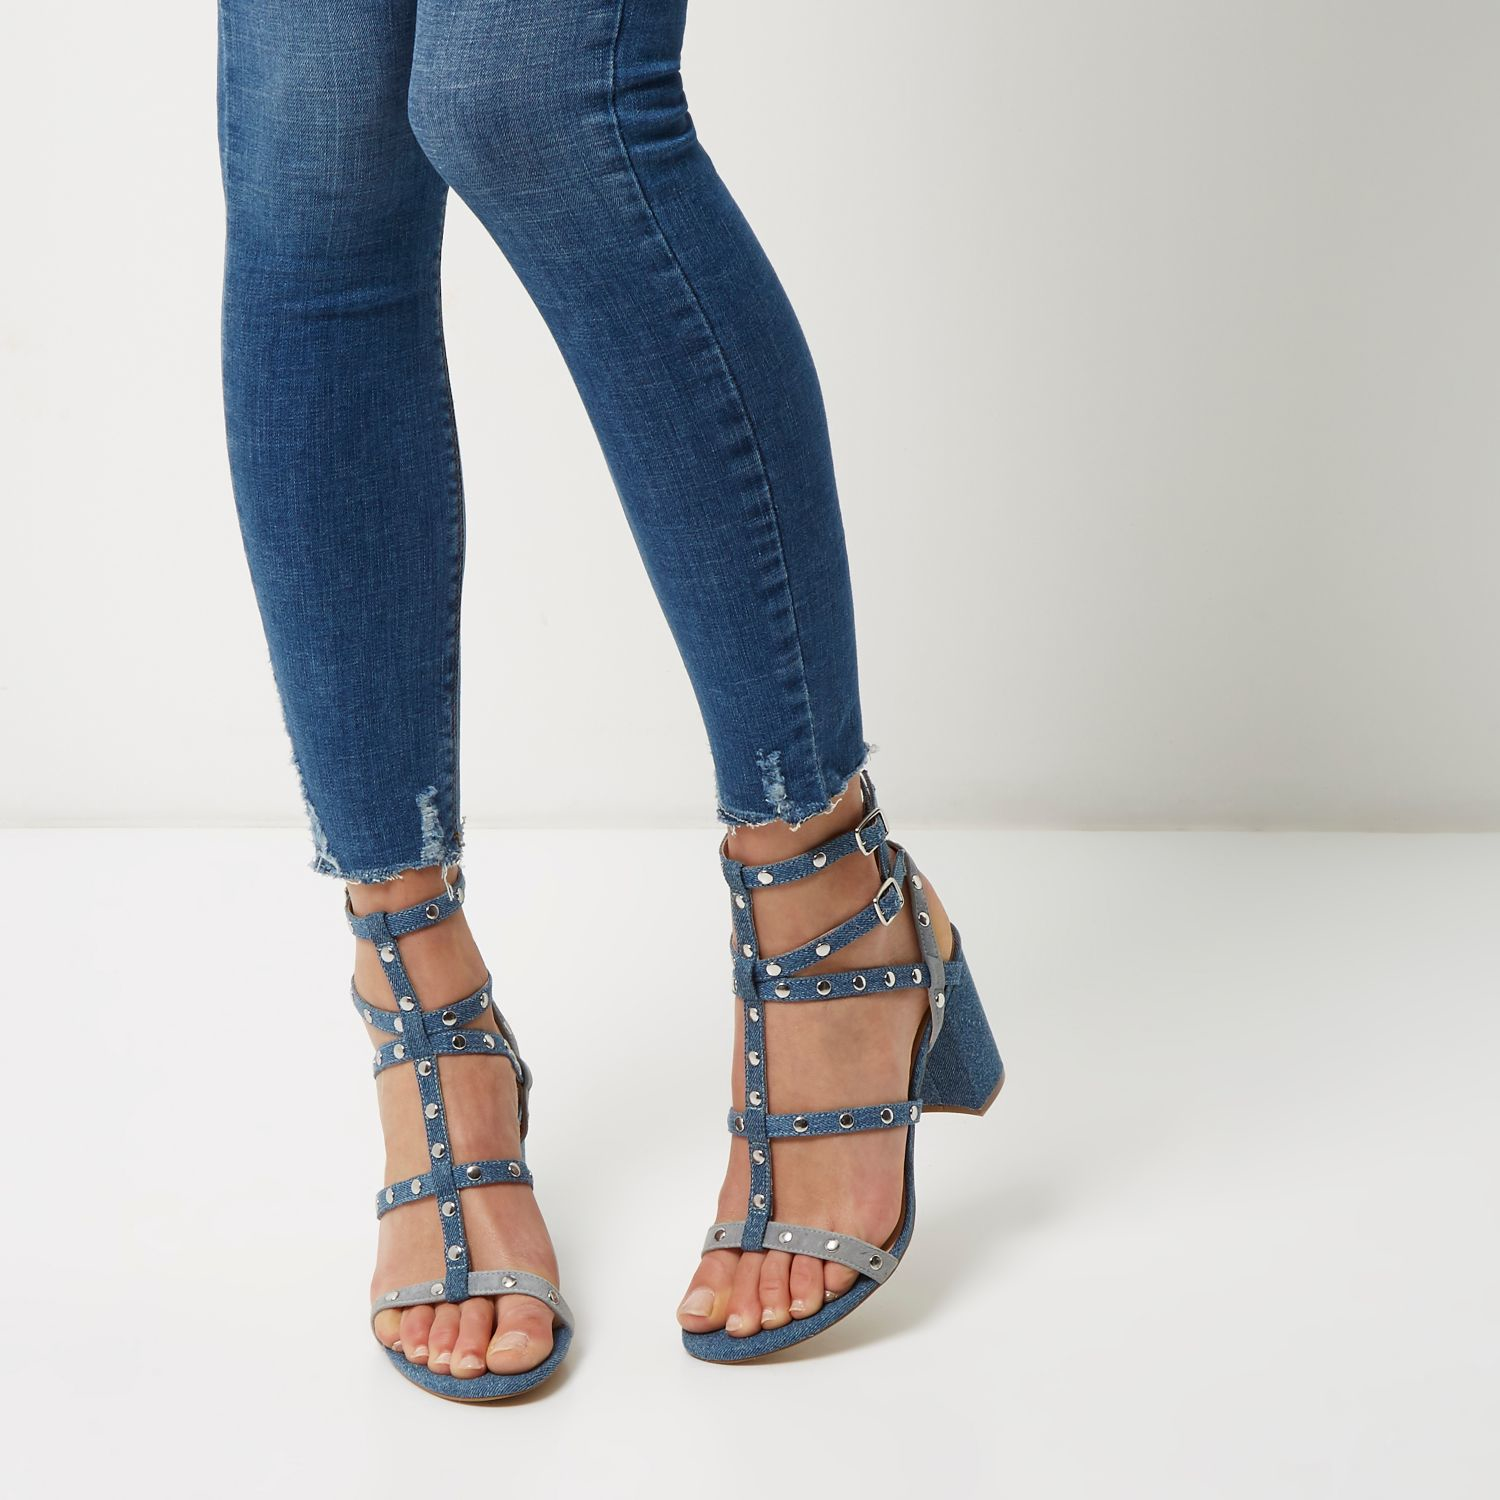 Jeans And Sandals Women With Beautiful Images u2013 playzoa.com